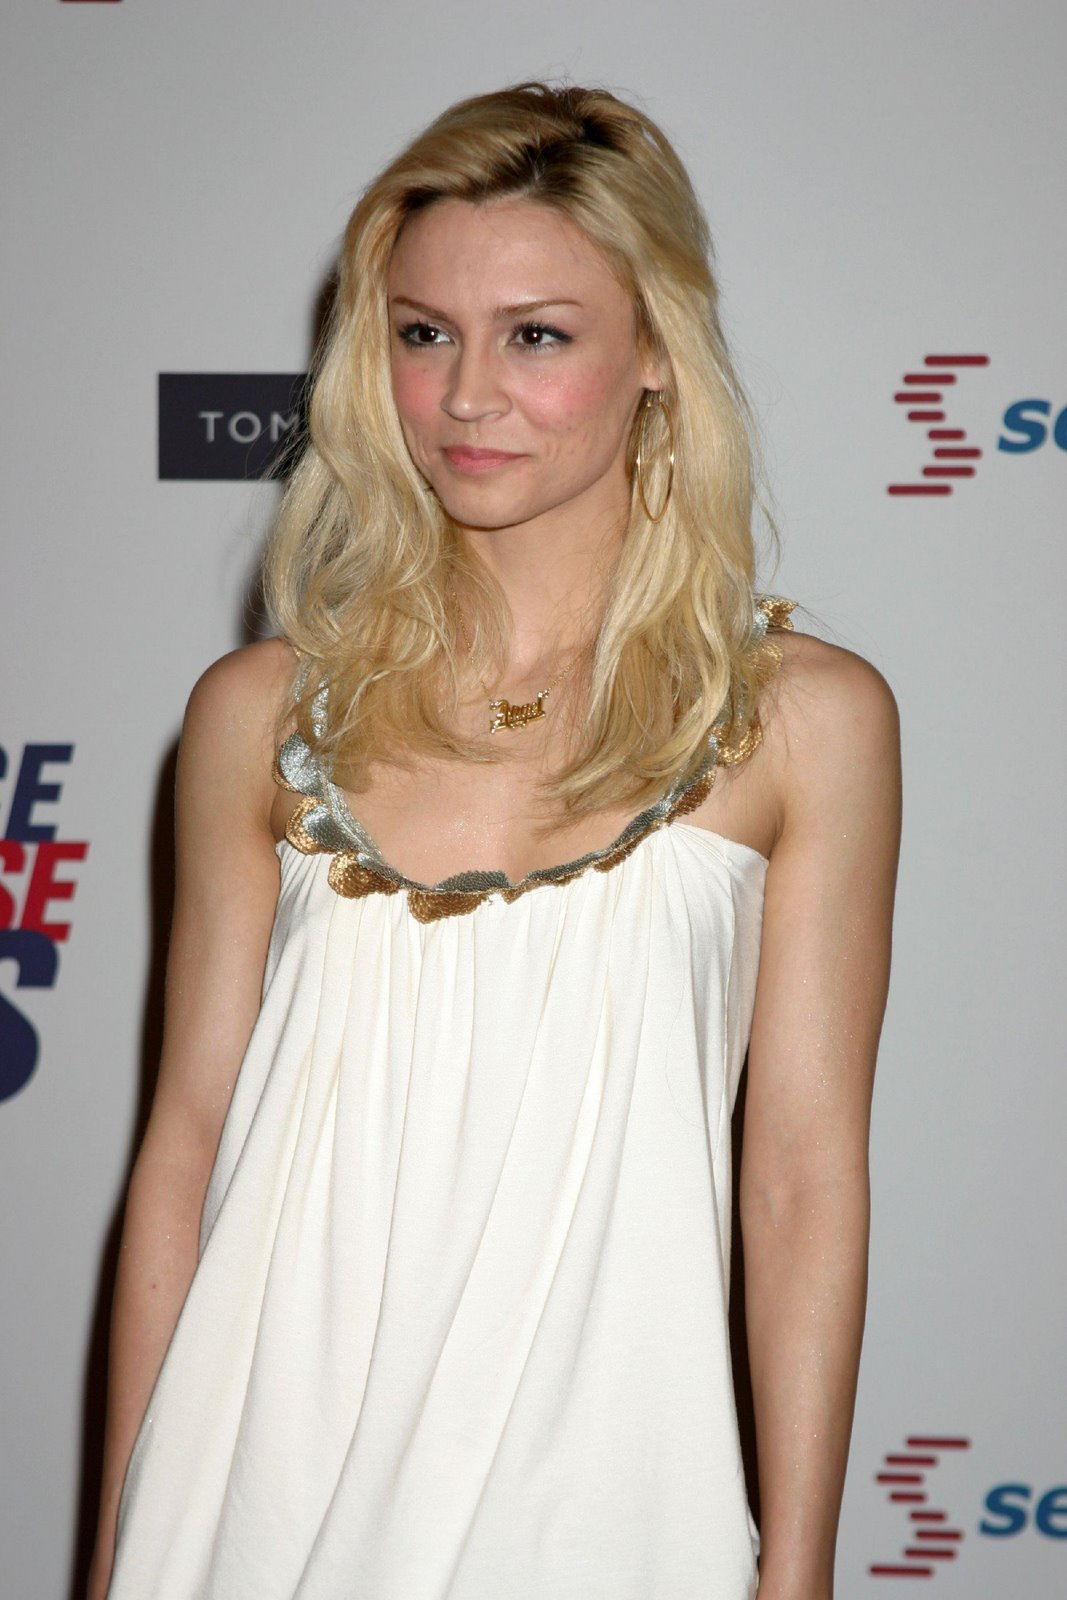 samaire armstrong 2015samaire armstrong instagram, samaire armstrong 2017, samaire armstrong arrow, samaire armstrong 2016, samaire armstrong facebook, samaire armstrong kevin zegers, samaire armstrong gallery, samaire armstrong jason christopher, samaire armstrong filmleri, samaire armstrong music video, samaire armstrong net worth, samaire armstrong 2015, samaire armstrong the oc, samaire armstrong 2014, samaire armstrong twitter, samaire armstrong wdw, samaire armstrong fan site